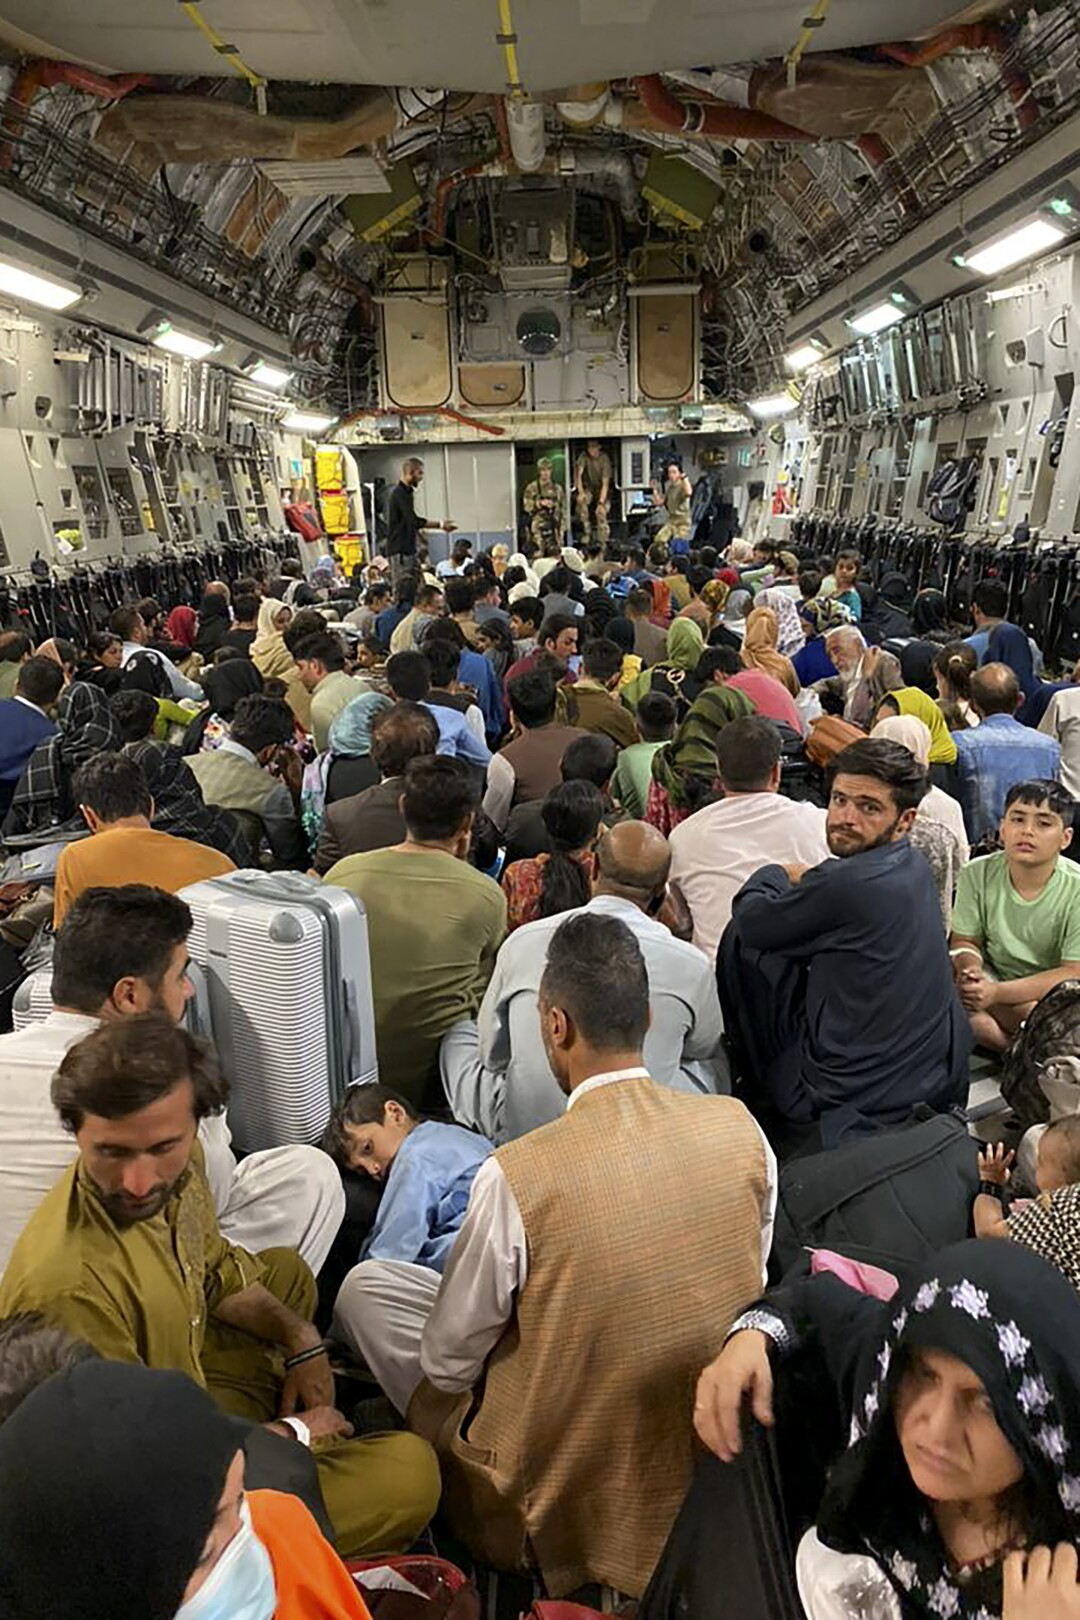 Afghan people sit inside a U S military aircraft to leave Afghanistan, at the military airport in Kabul.